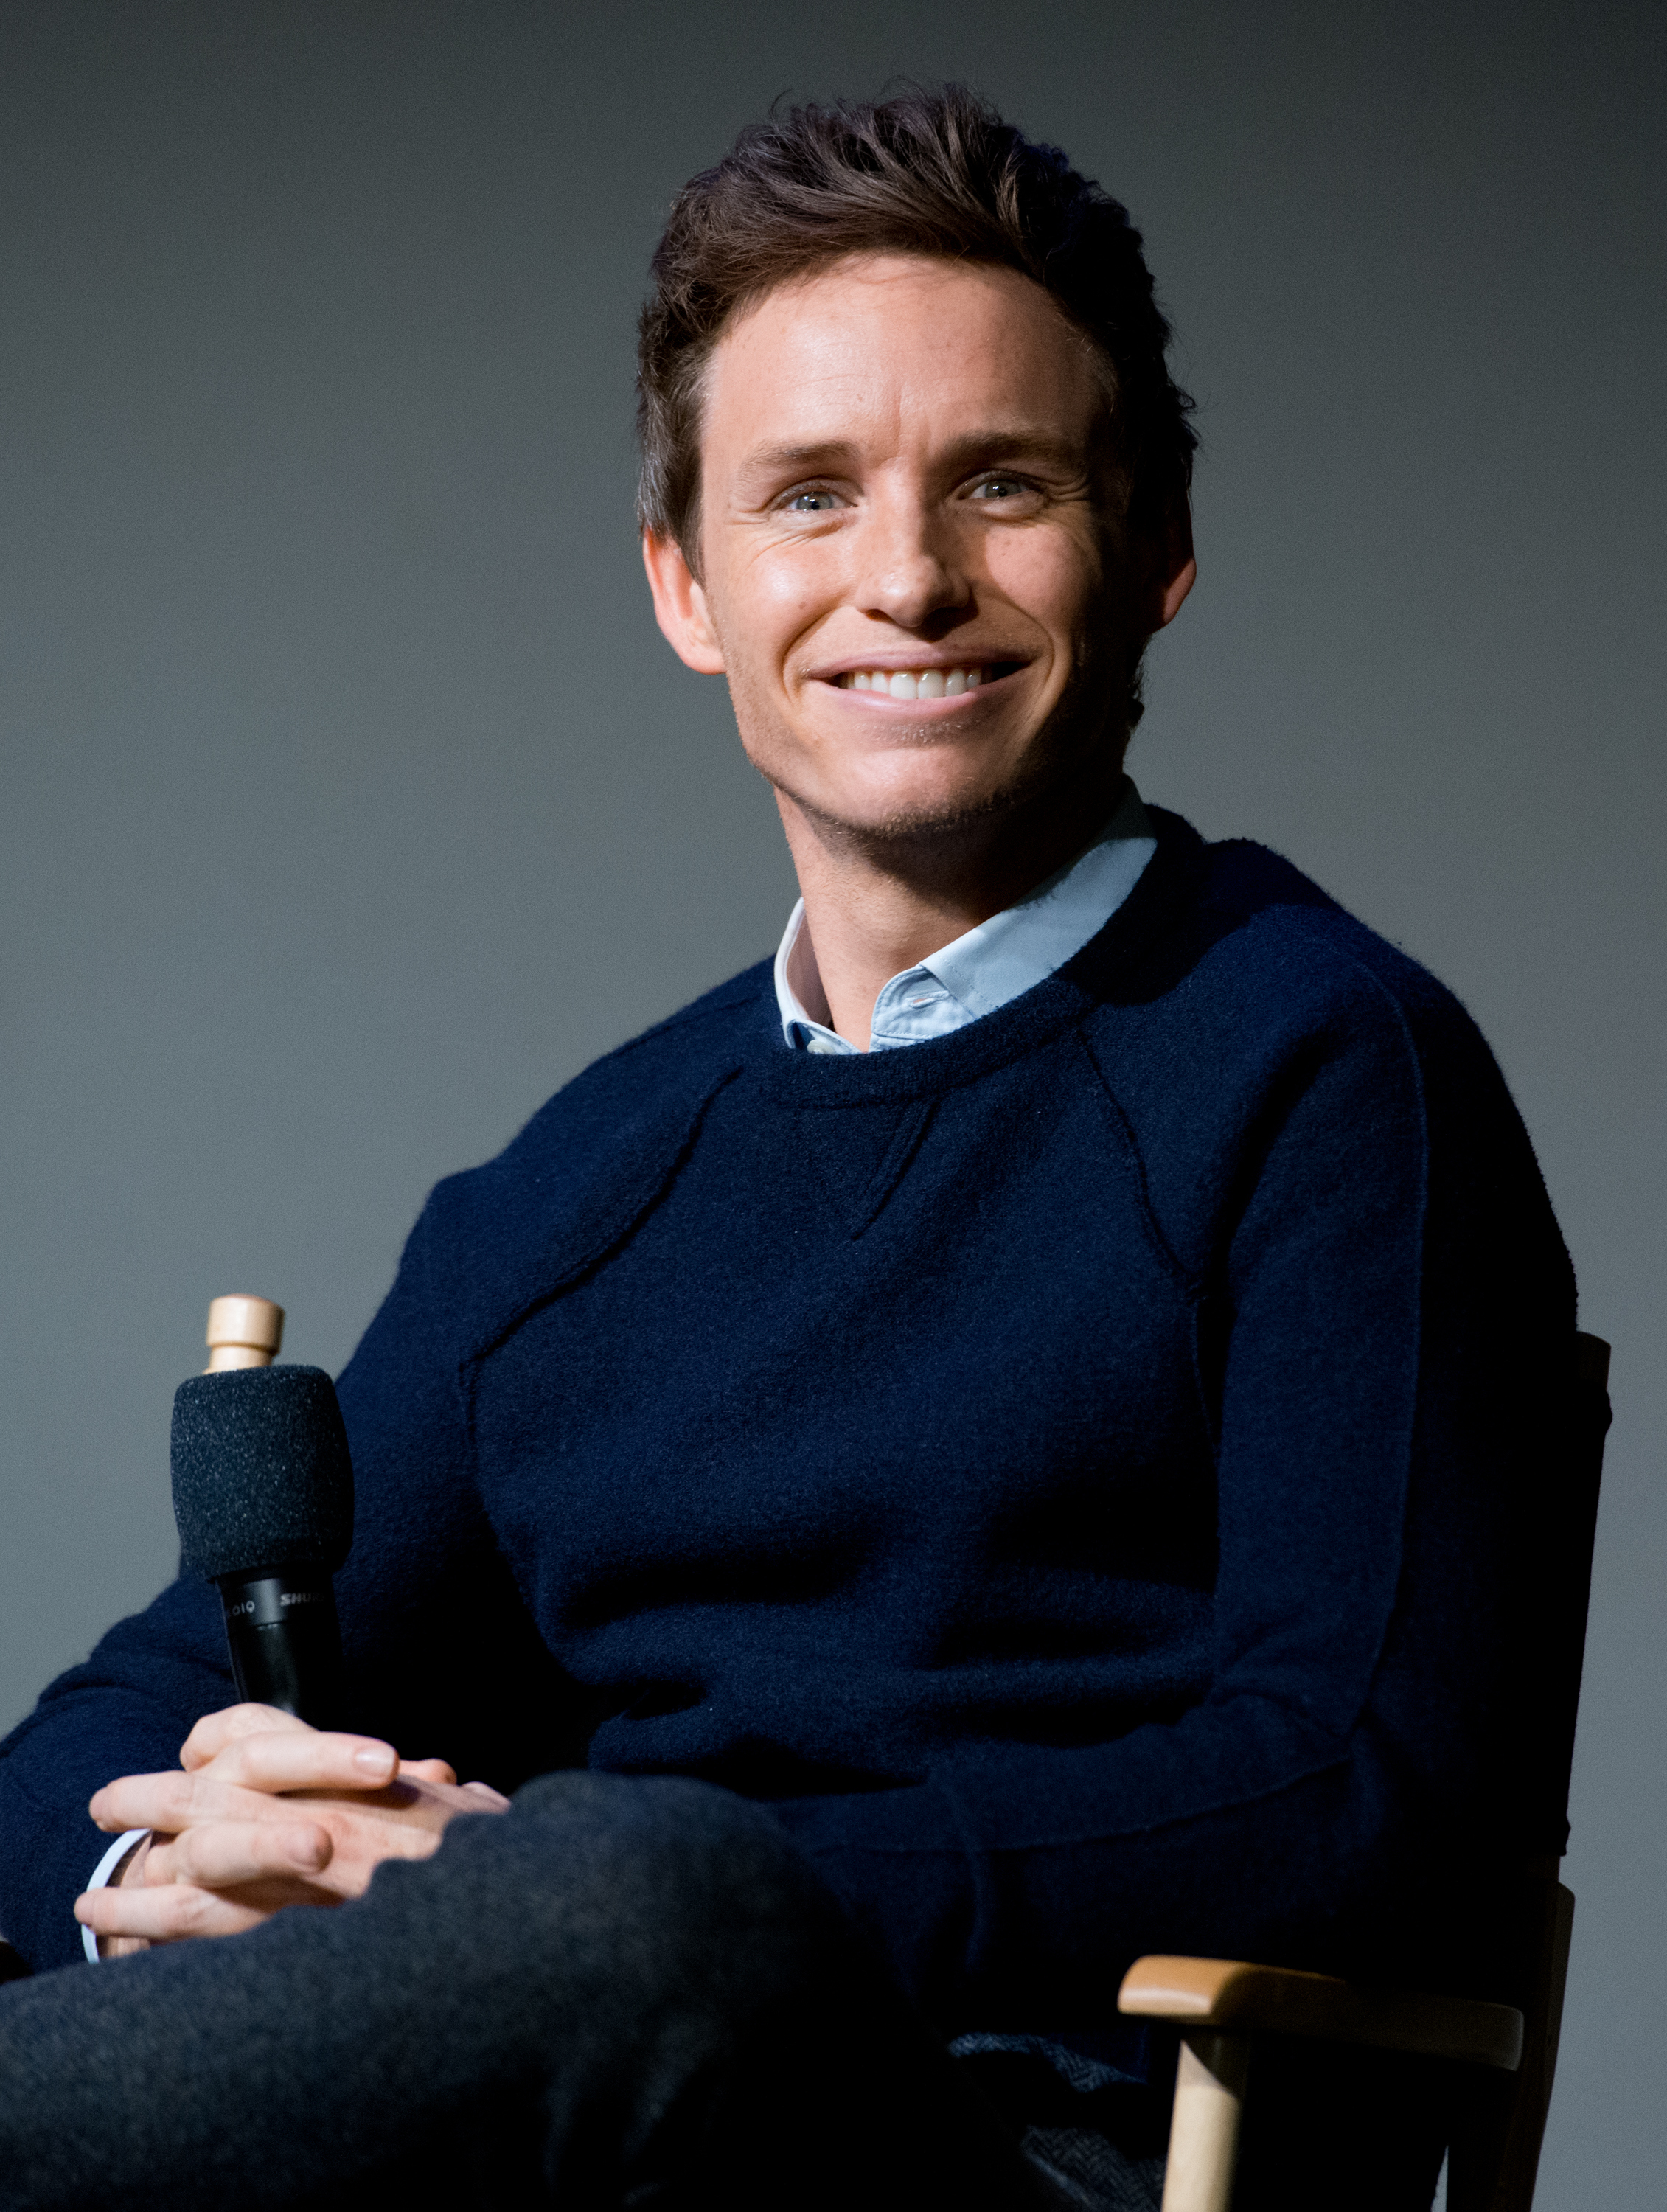 Actor Eddie Redmayne attends 'Meet the Actor' at Apple Store Soho on November 4, 2014 in New York City.